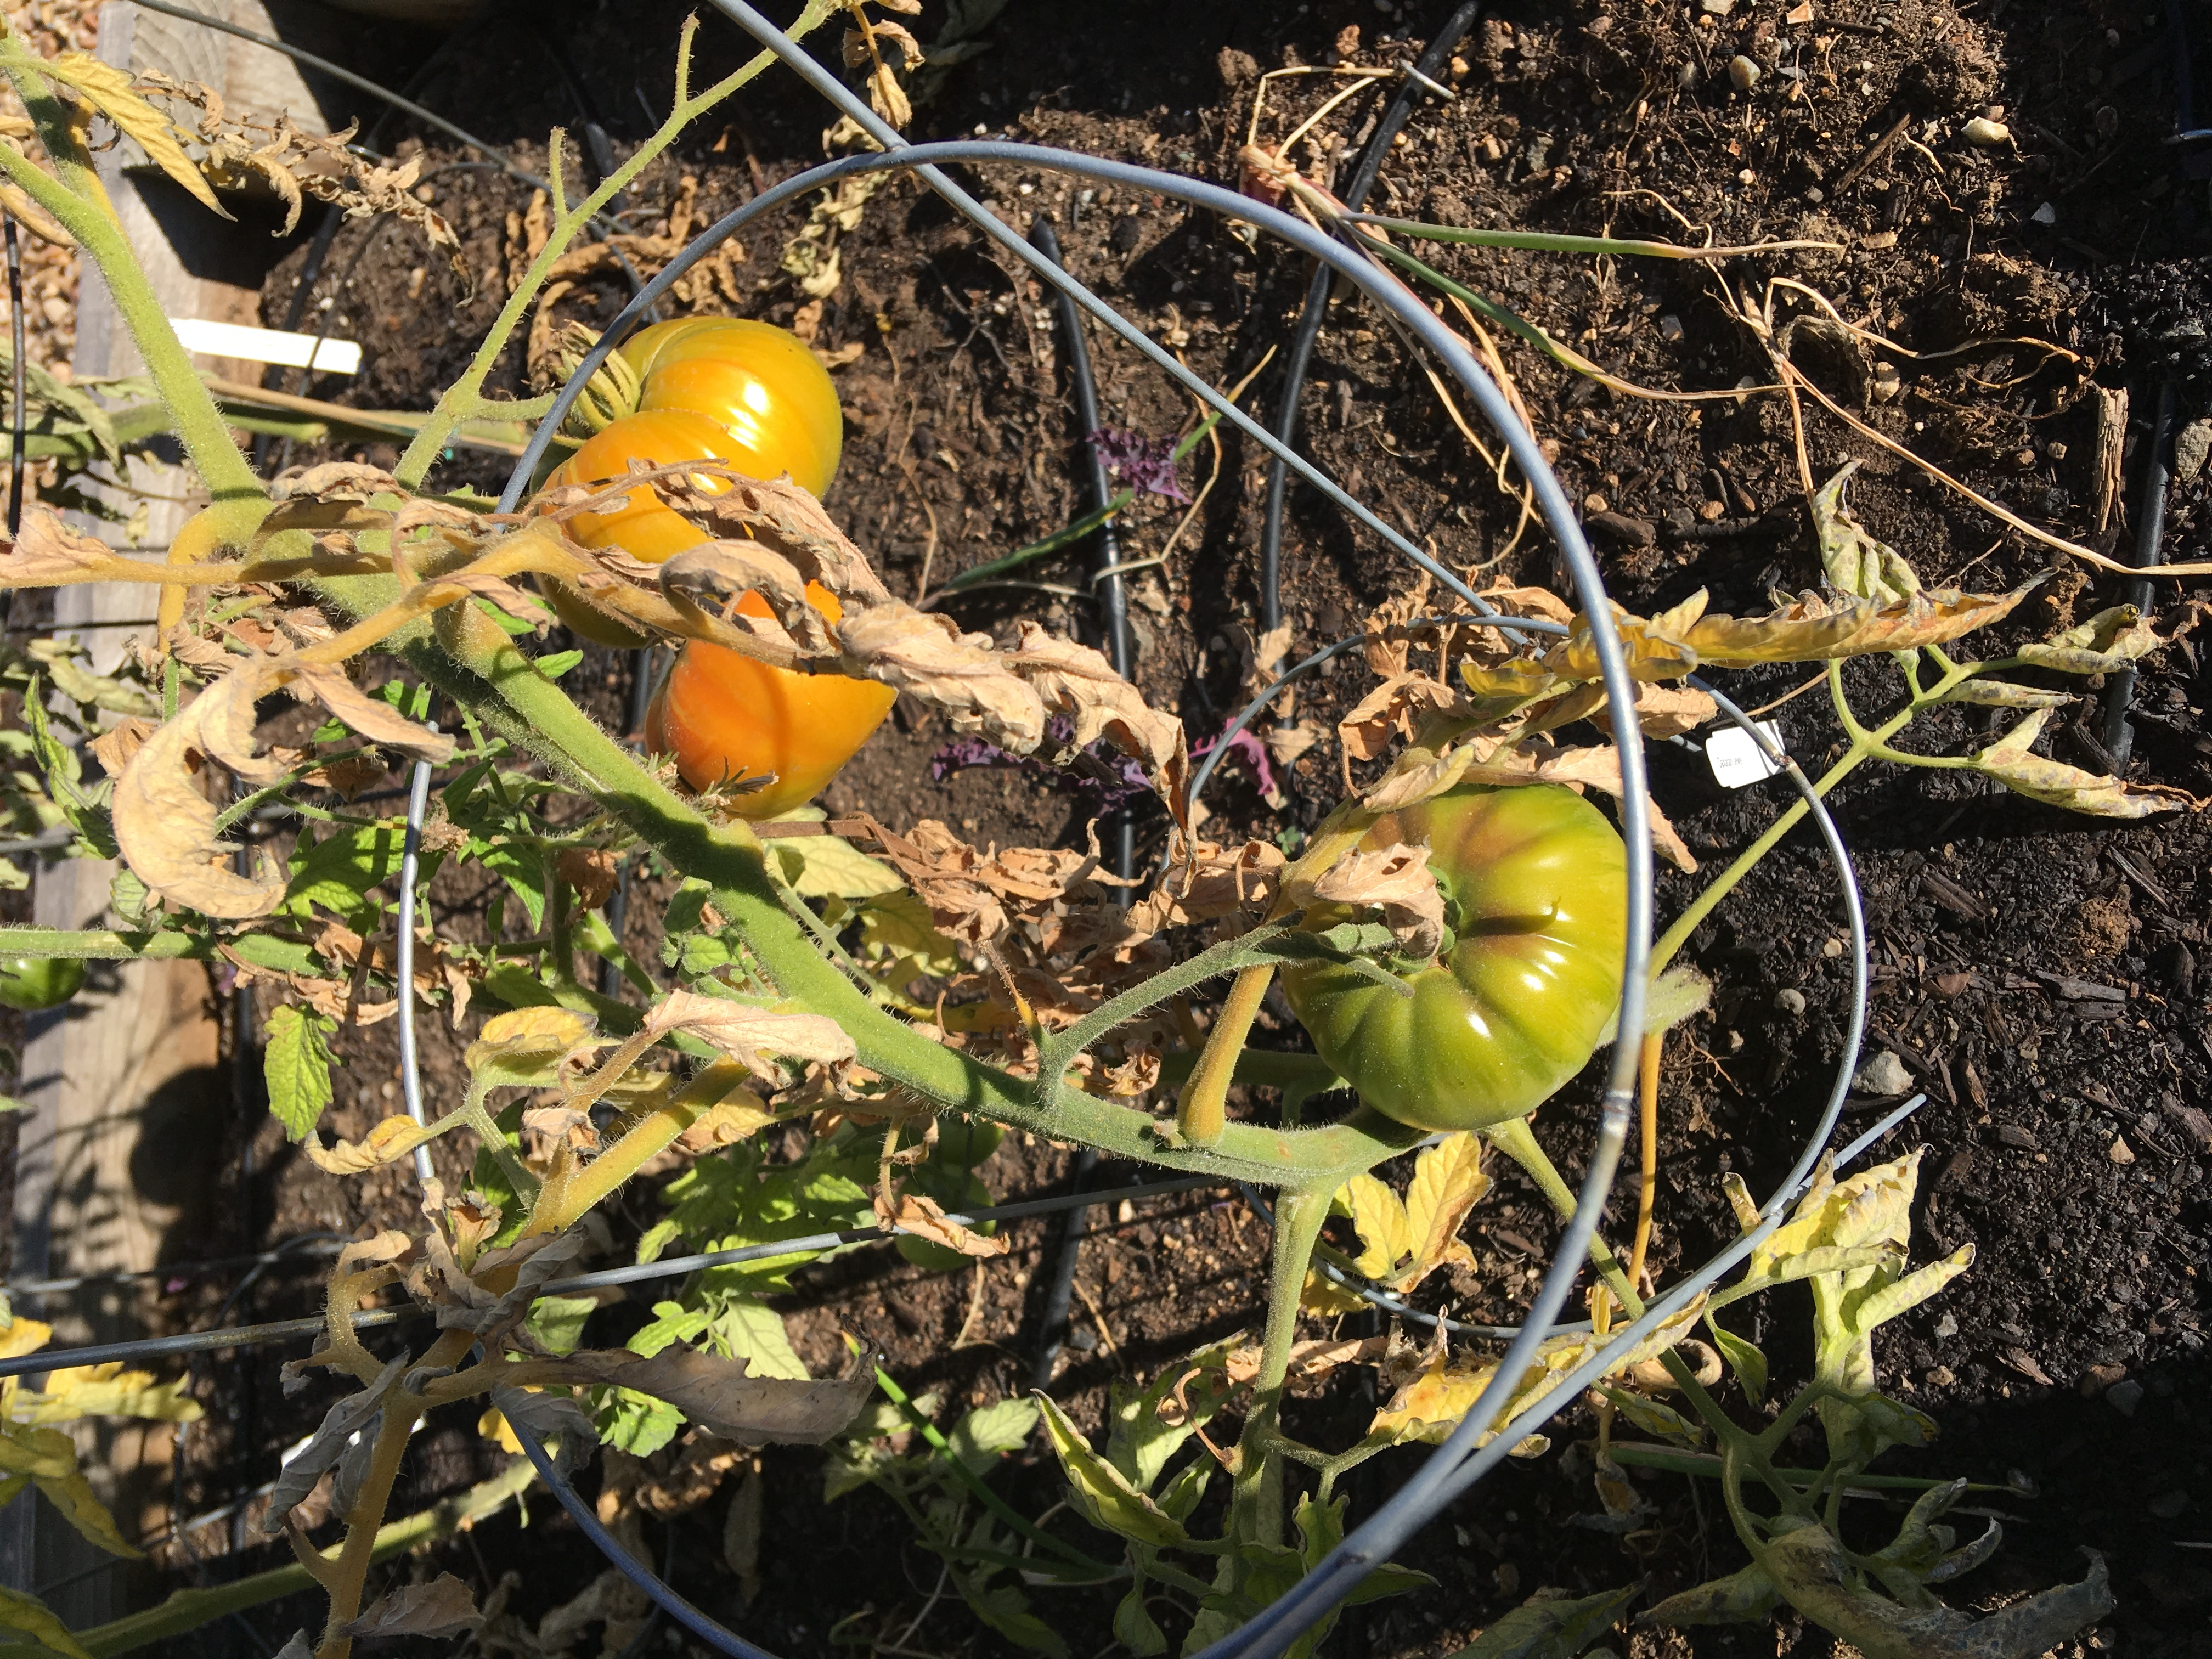 Soil borne tomato diseases (projects forum at permies)